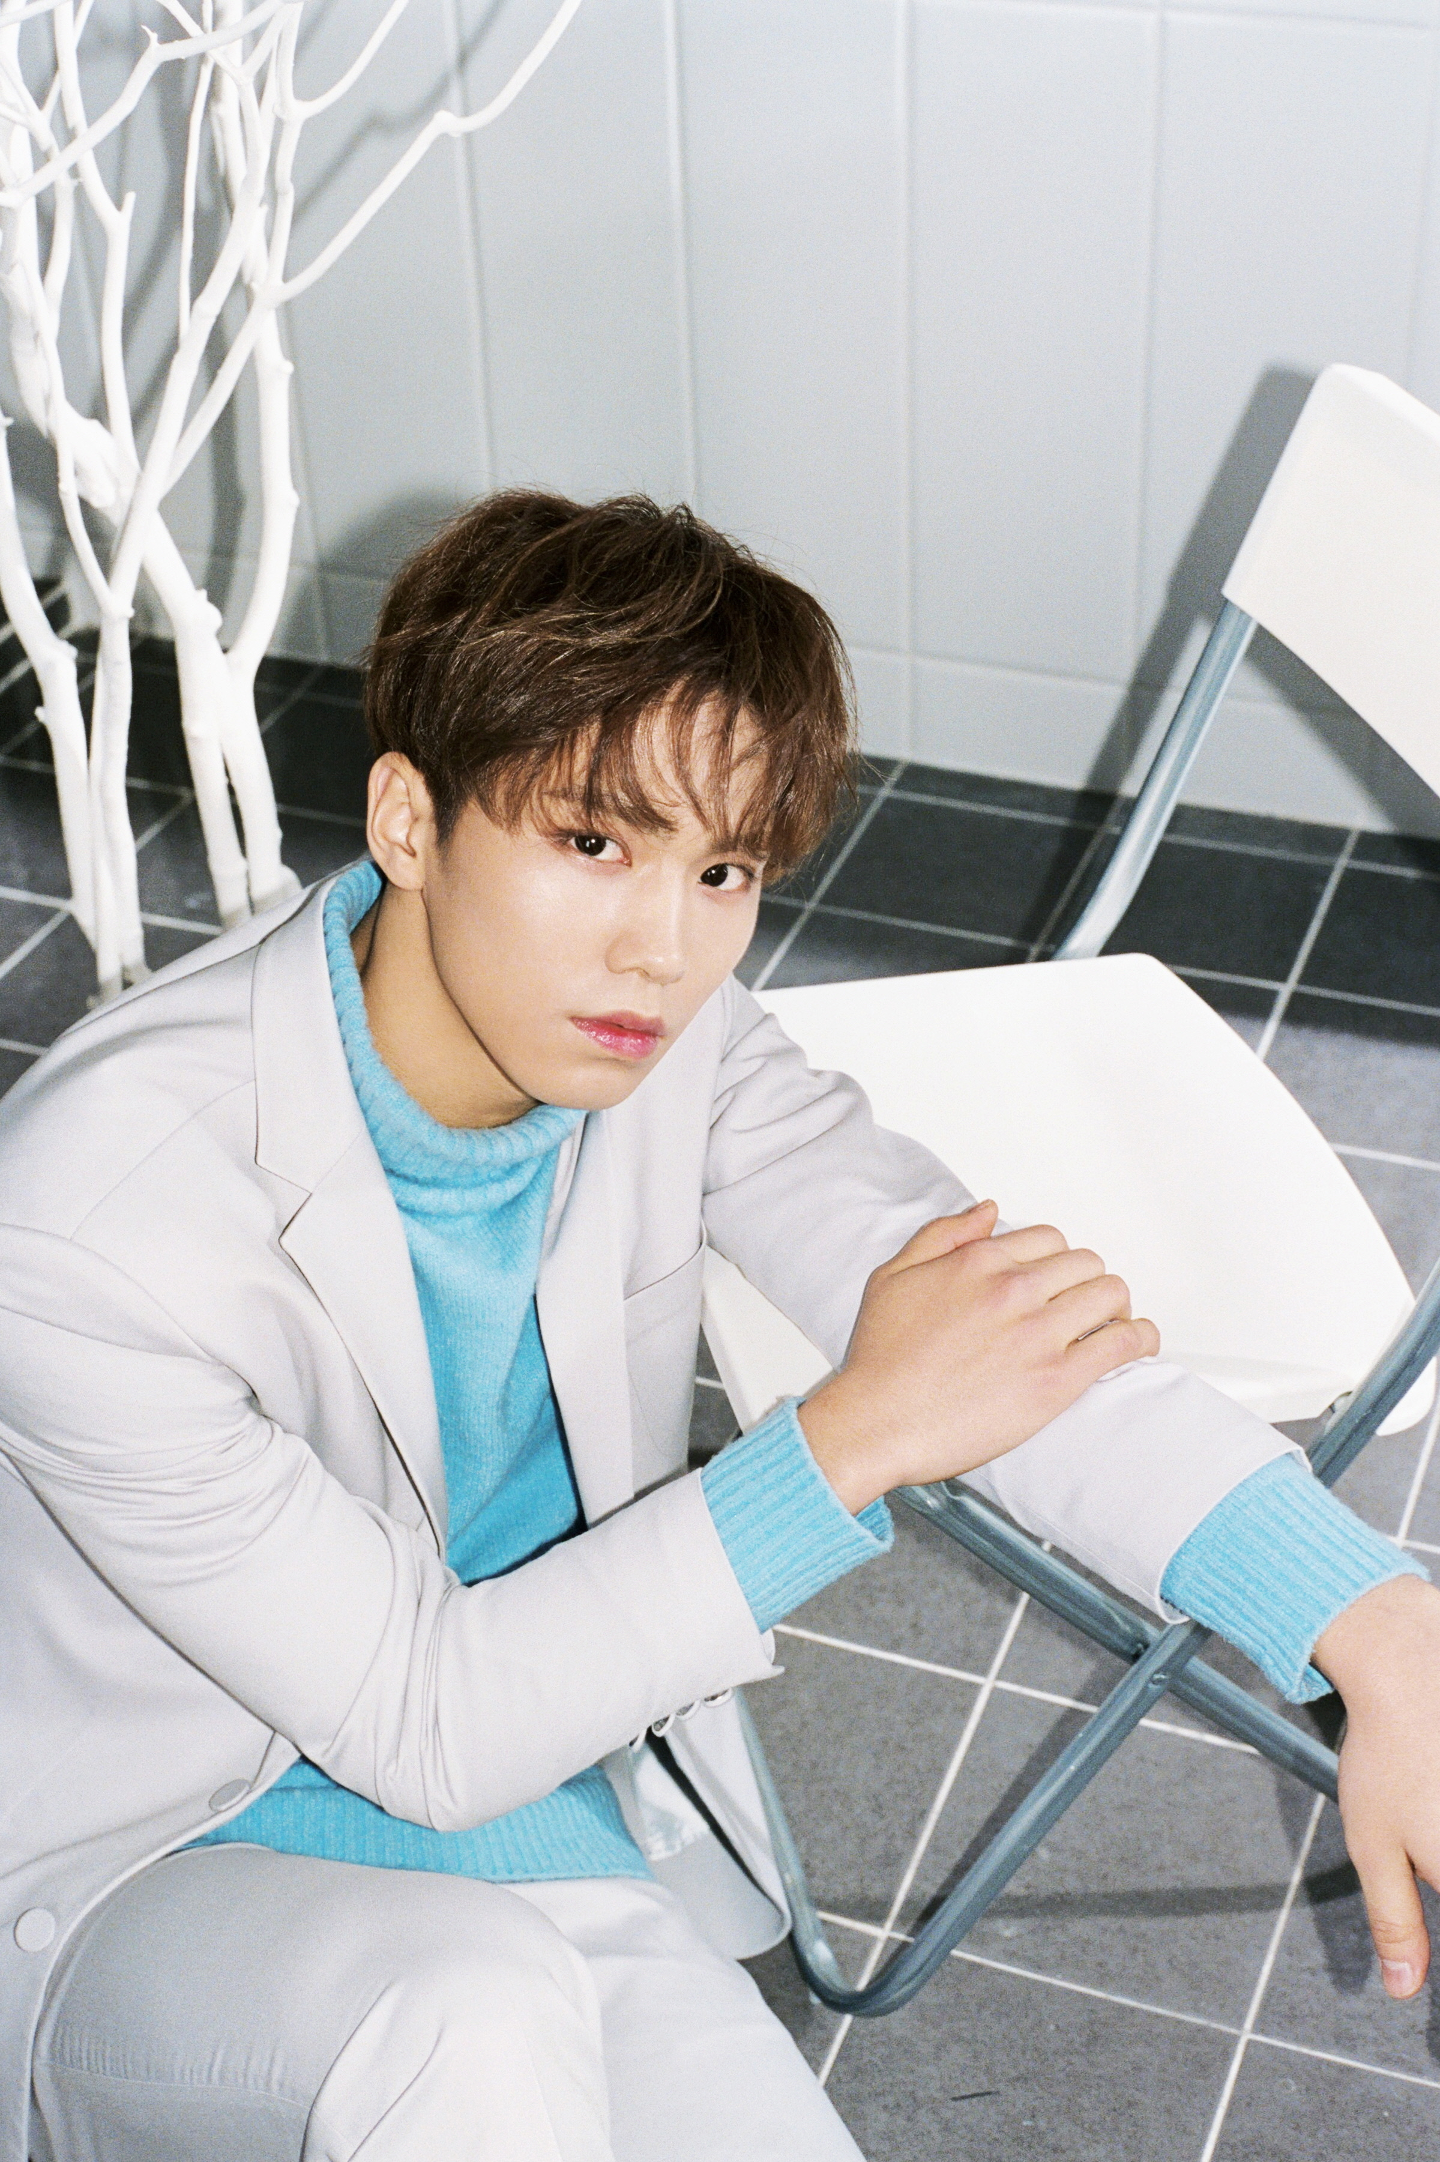 ASTRO Rocky Winter Dream promo photo